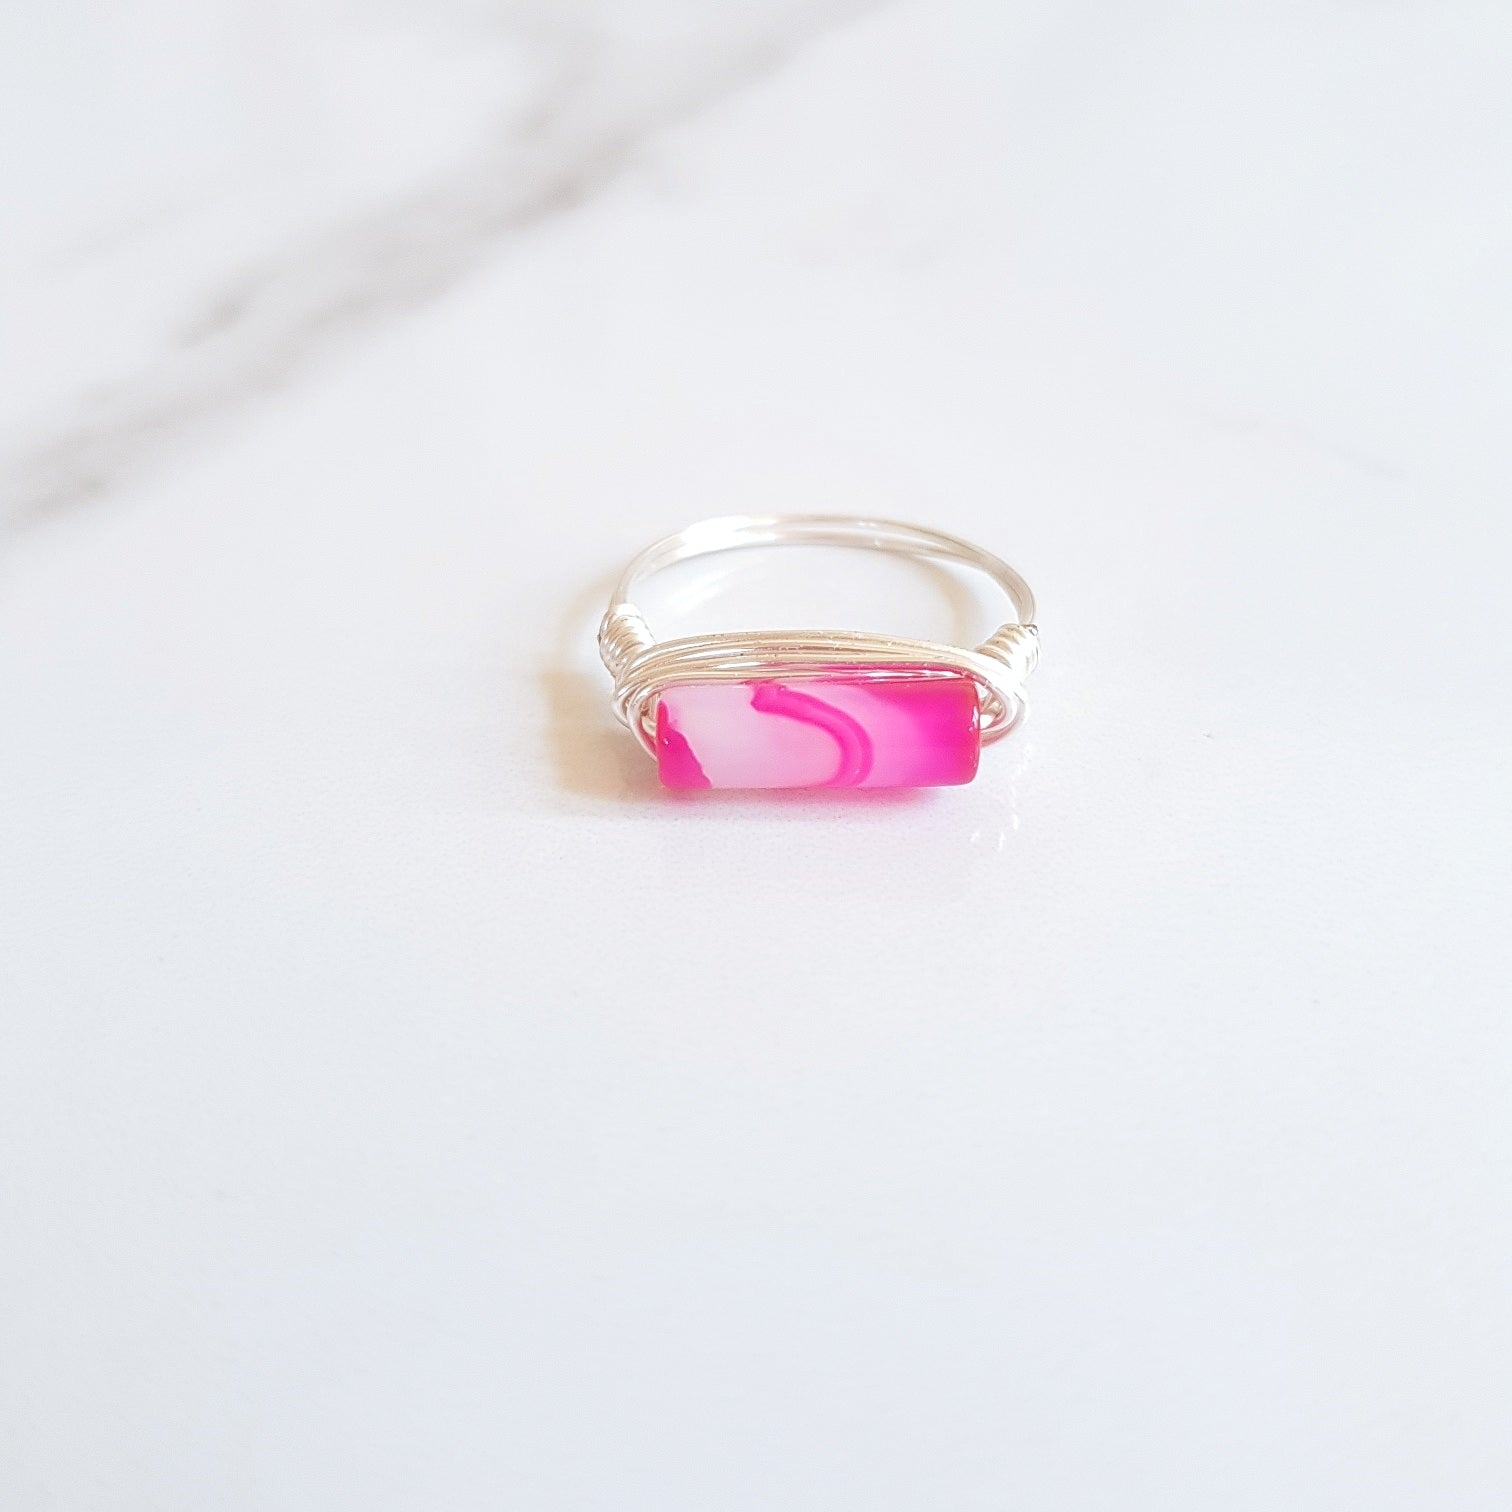 Rail Ring - Pink Agate